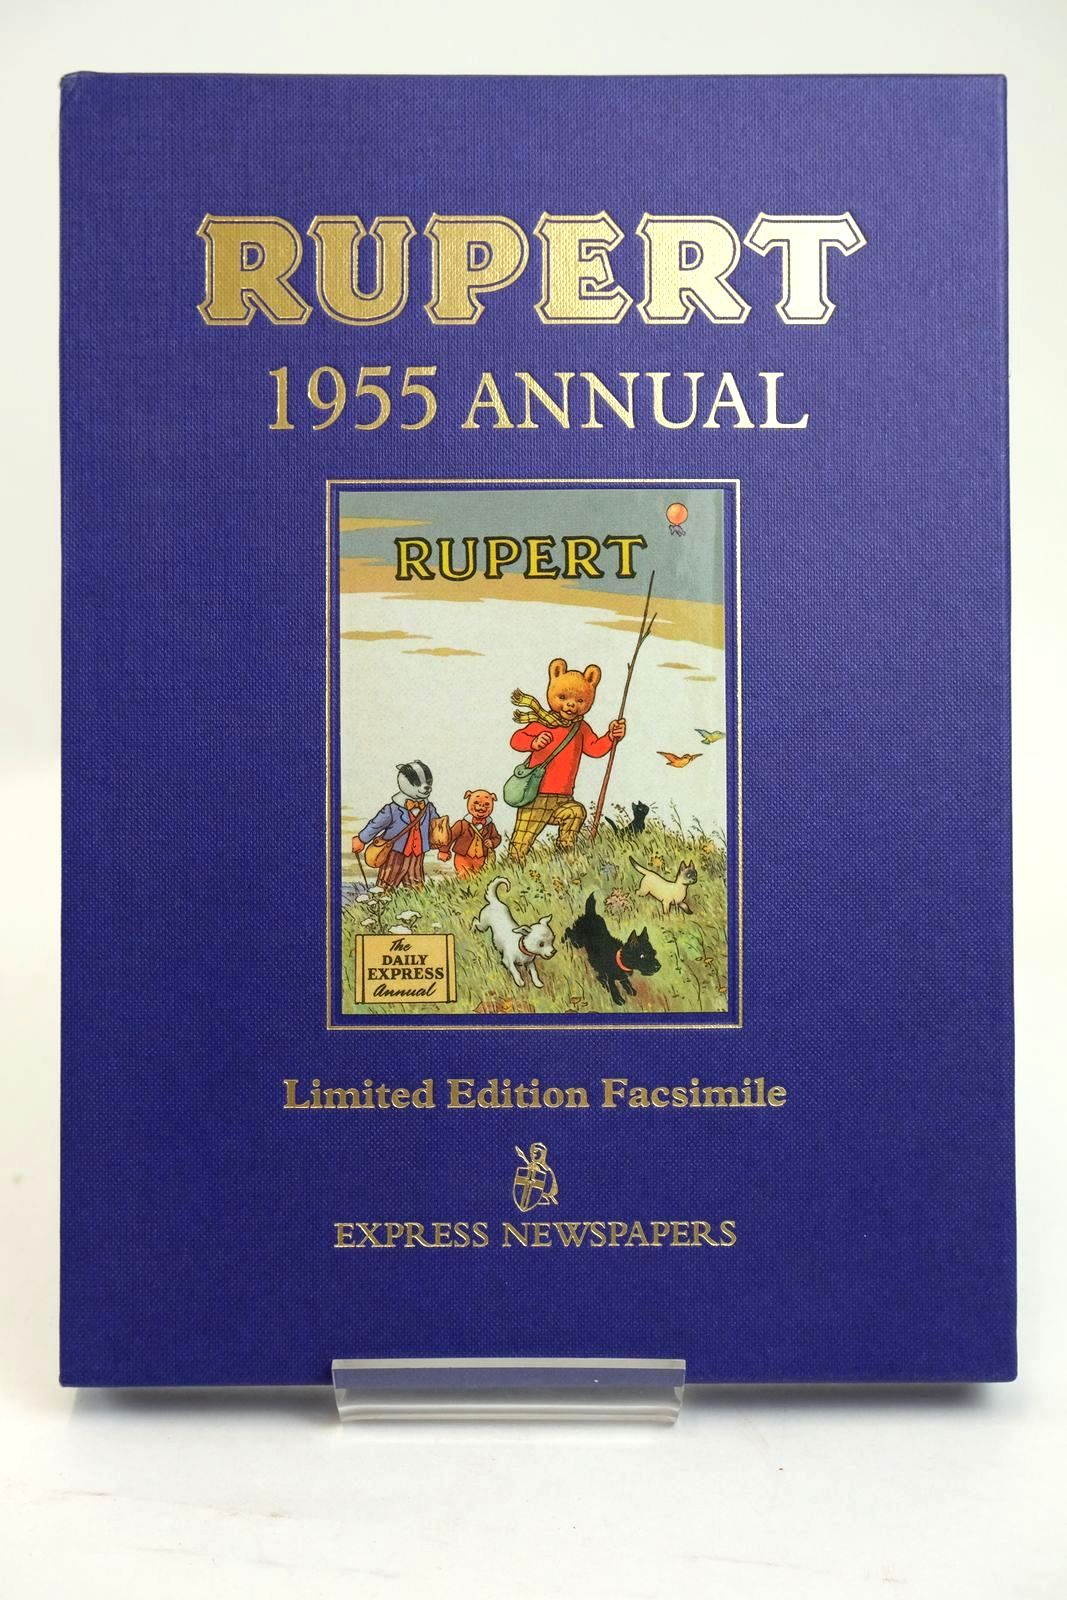 Photo of RUPERT ANNUAL 1955 (FACSIMILE) written by Bestall, Alfred illustrated by Bestall, Alfred published by Express Newspapers Ltd. (STOCK CODE: 1319407)  for sale by Stella & Rose's Books